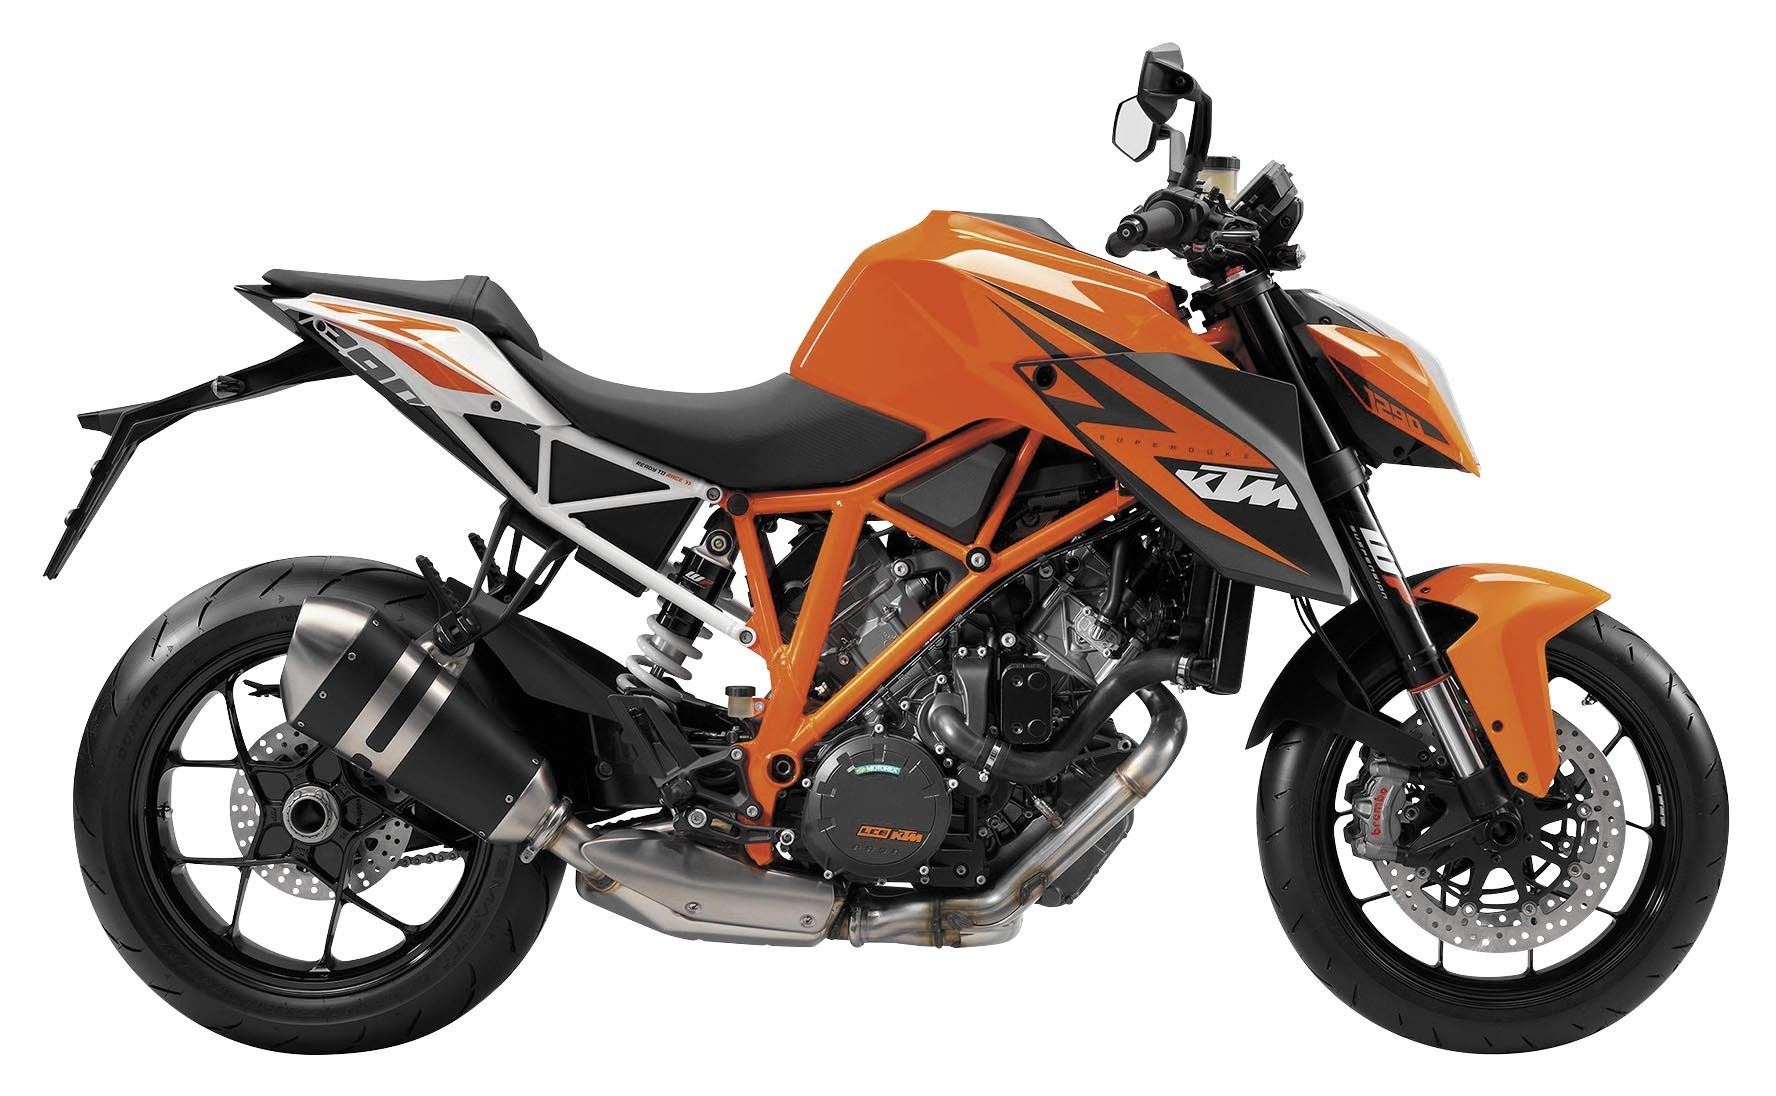 New Ray Toys 2014 KTM 1290 Super Duke R 1:12 - Cycle Gear